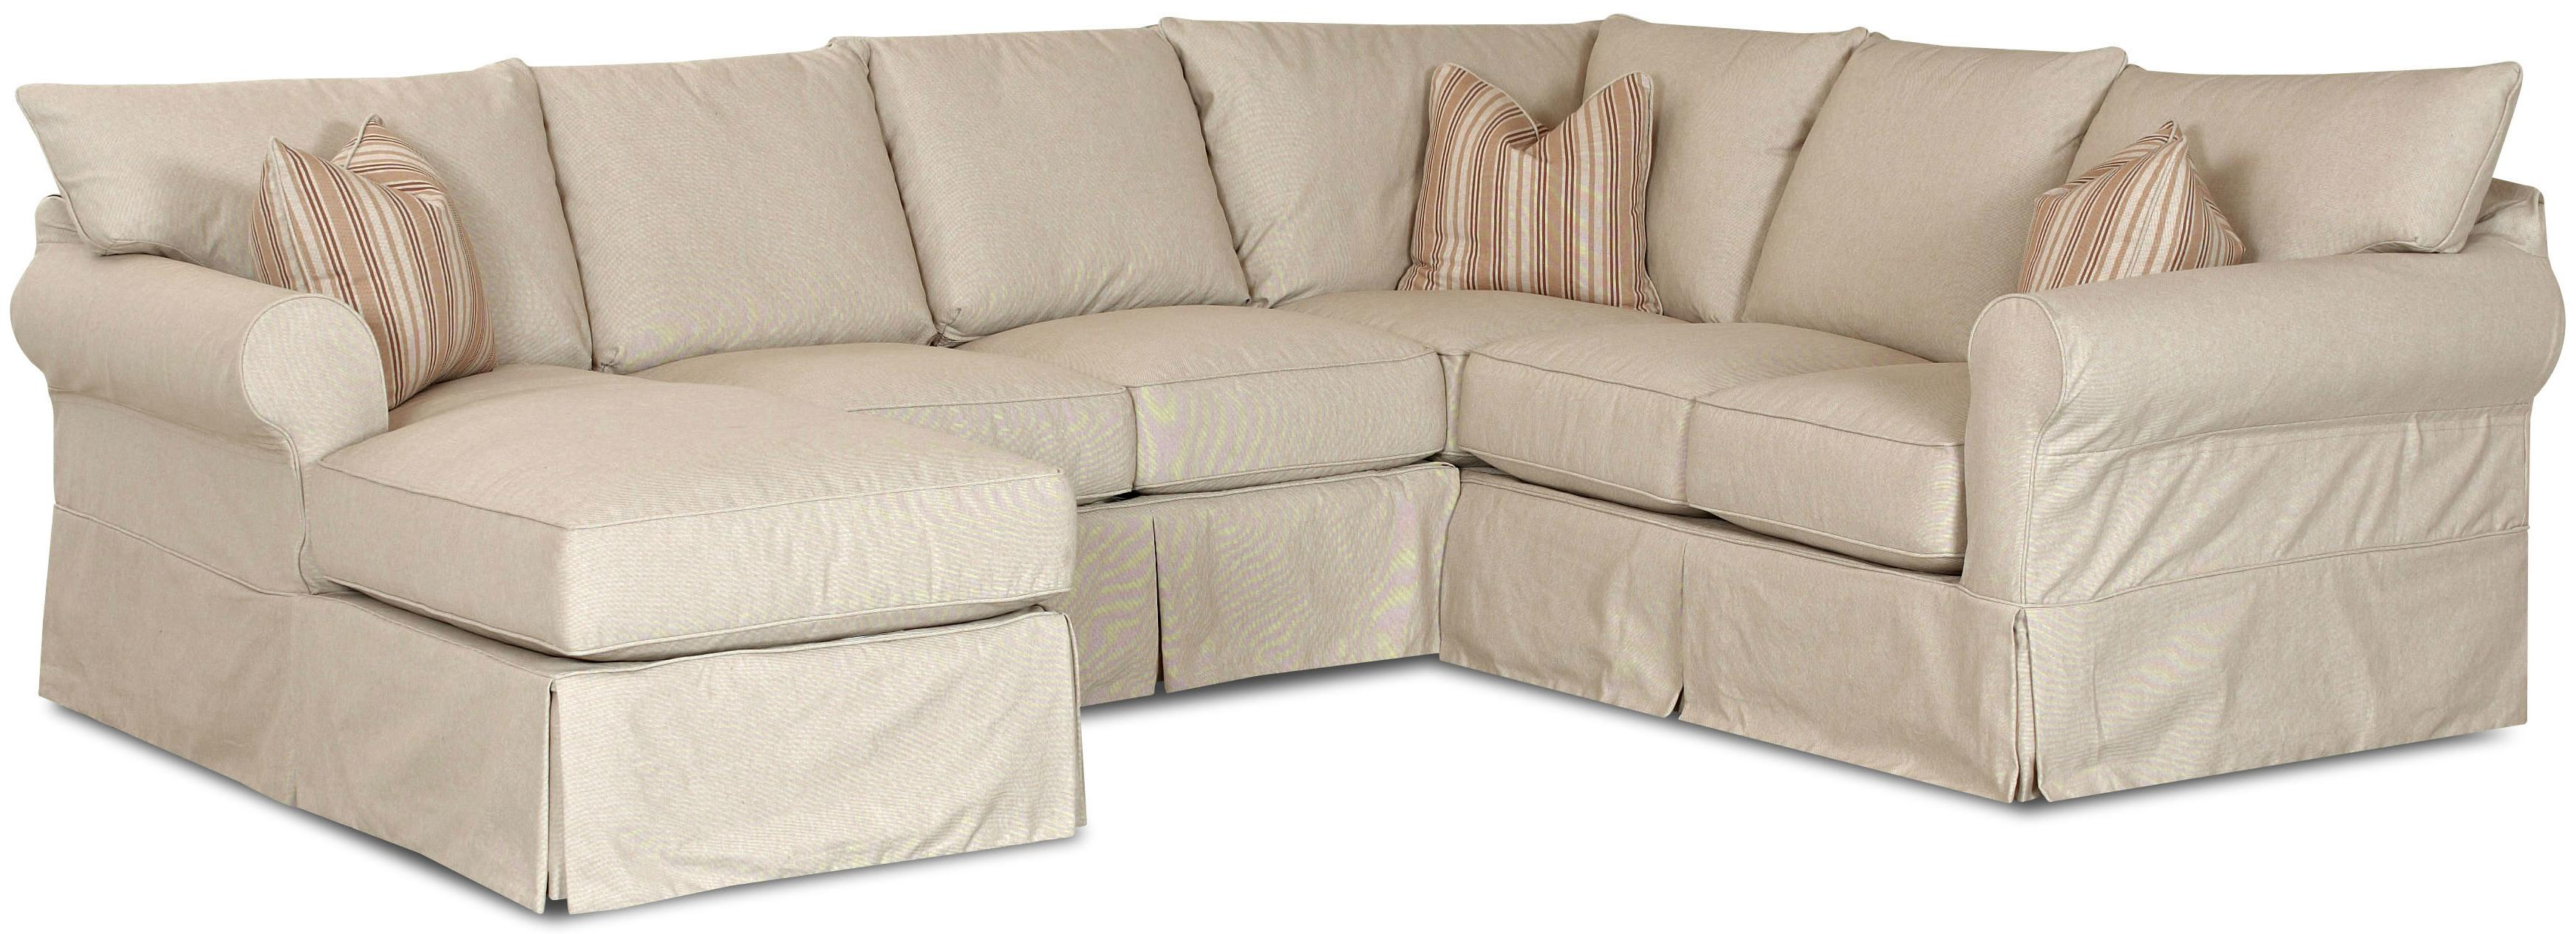 bright colored sofa covers corner sofas uk argos klaussner jenny slip cover sectional with left chaise